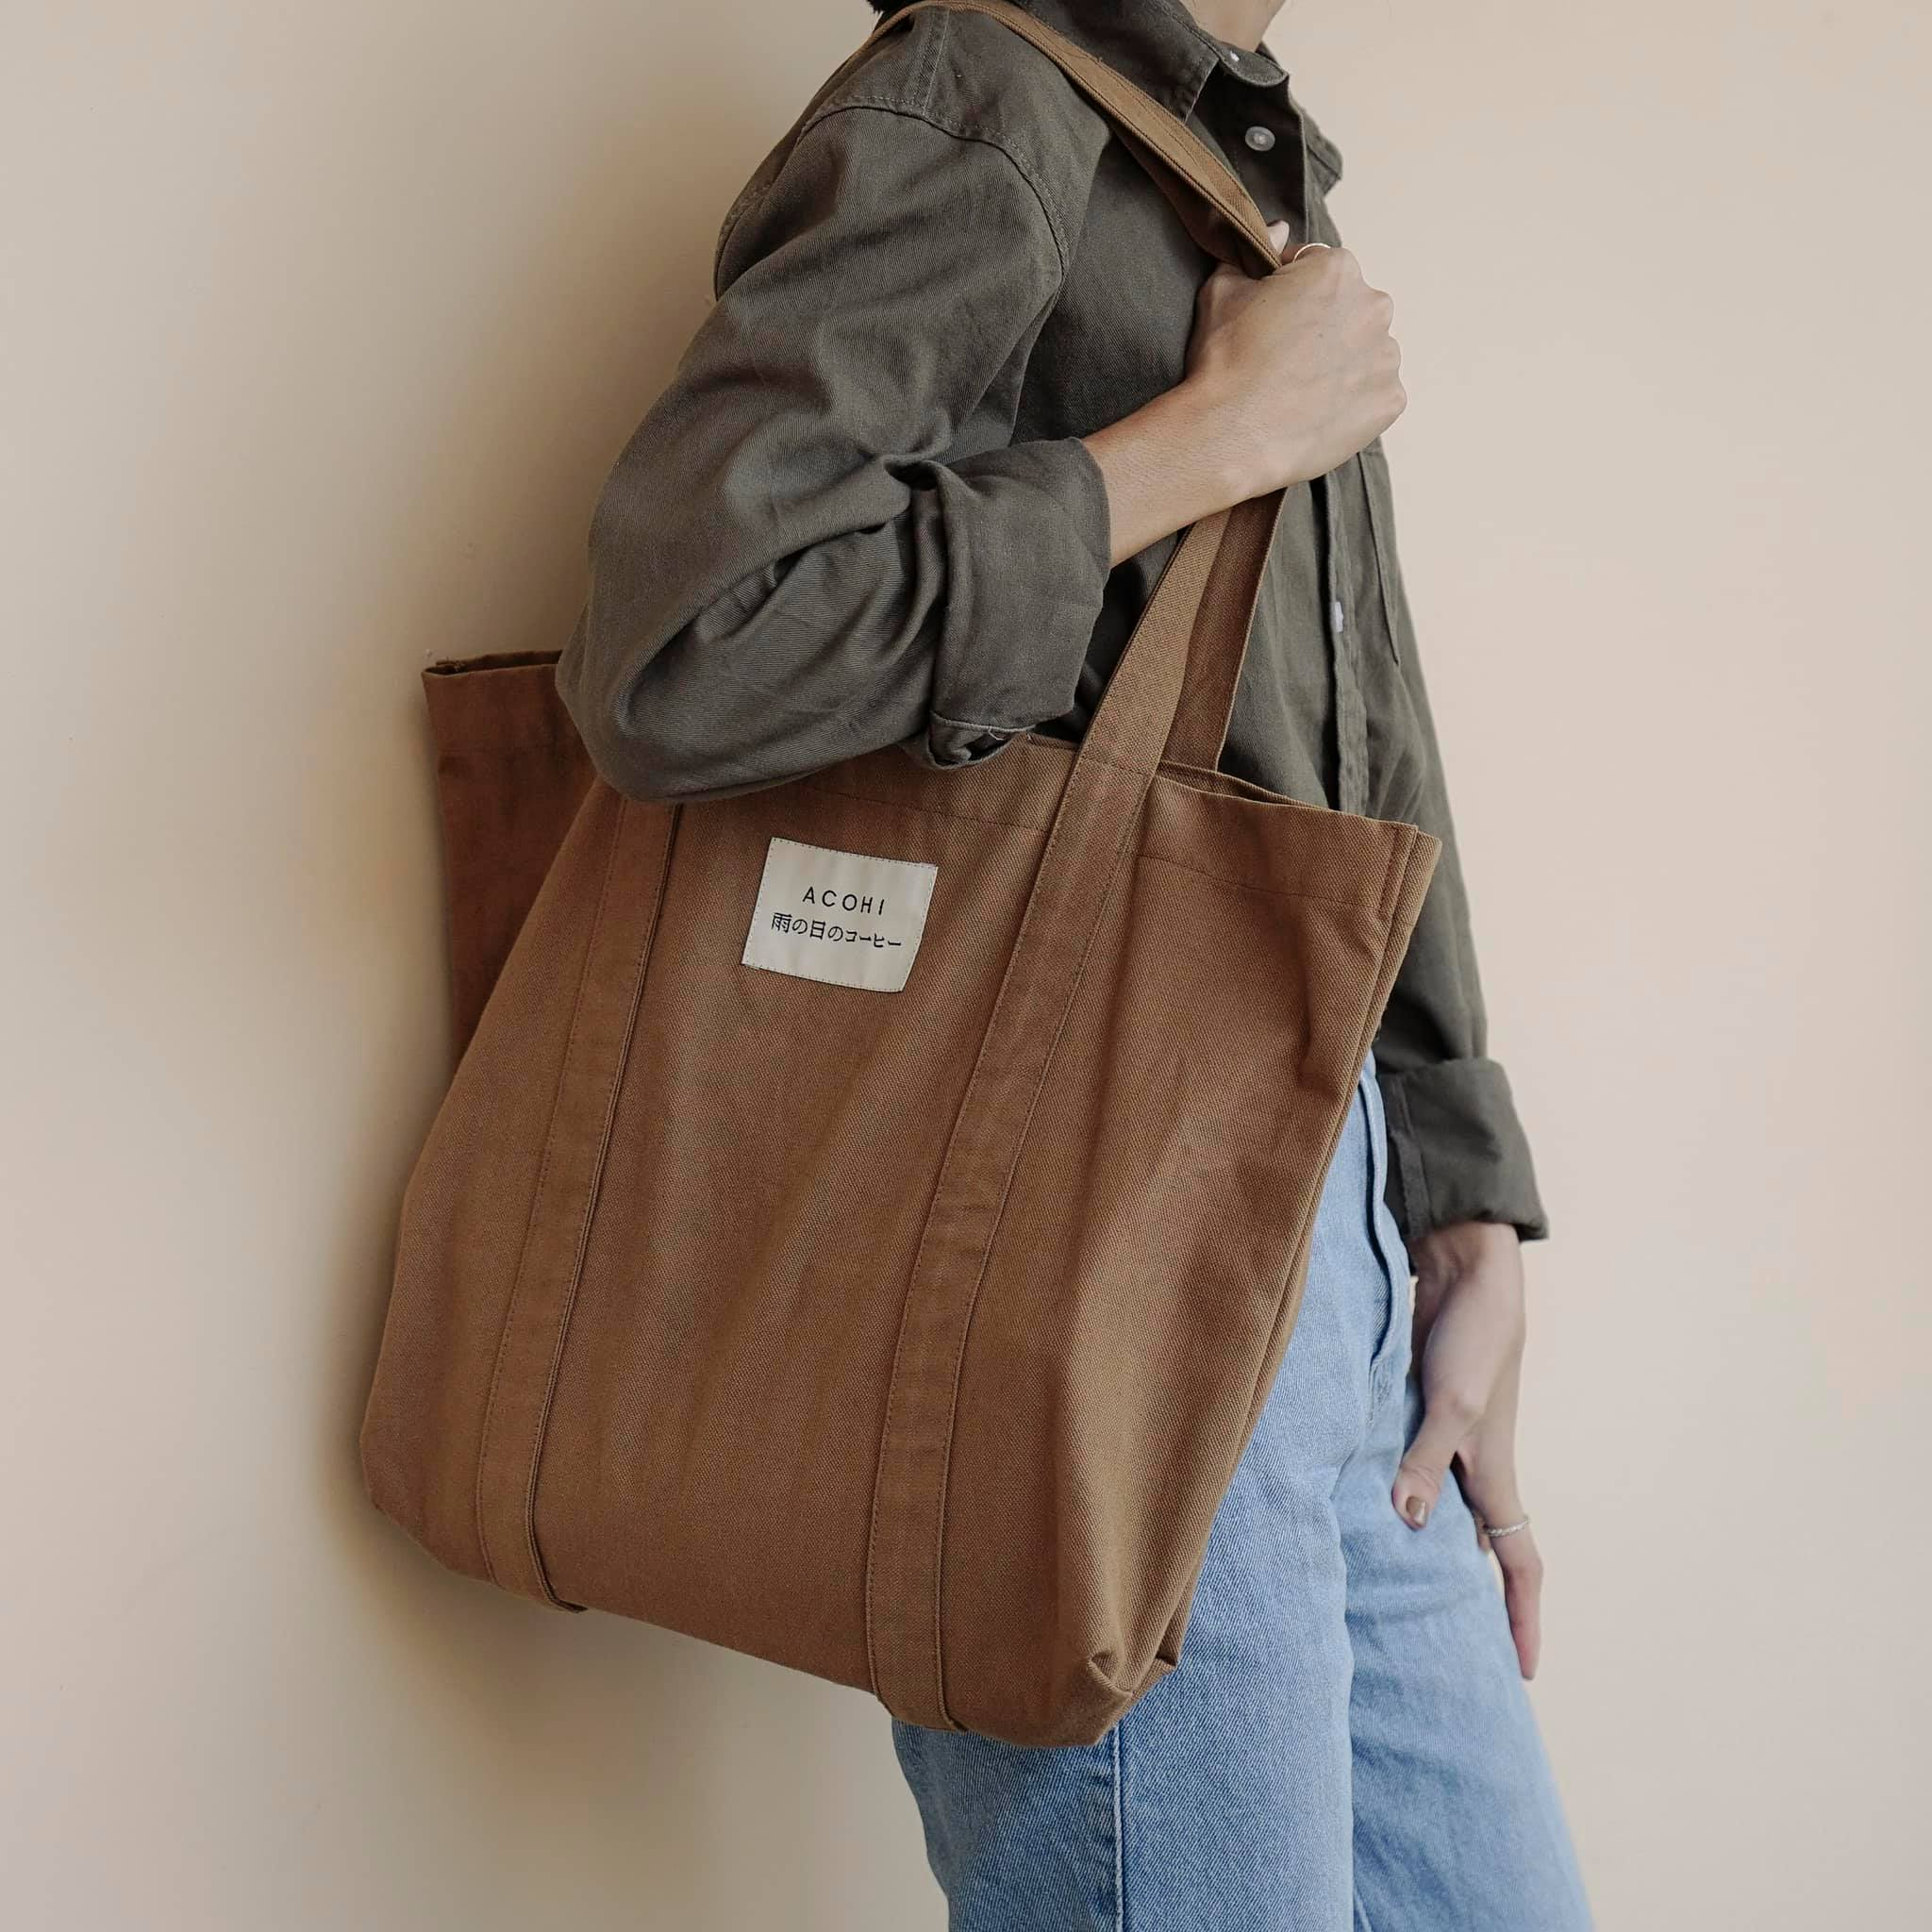 Made in VN bags